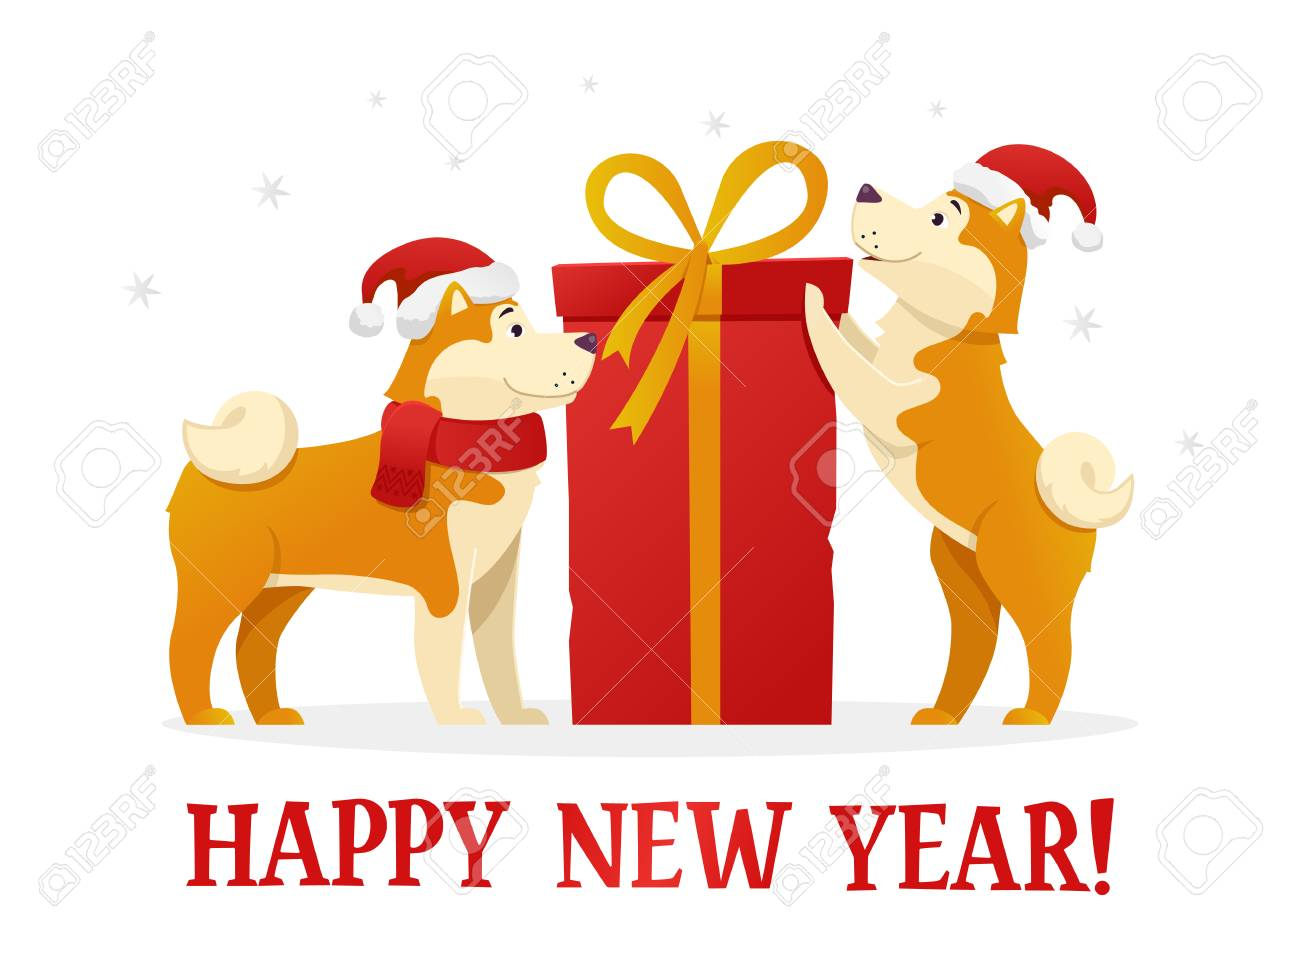 Happy new year 2018 postcard template with two cute yellow dogs happy new year 2018 postcard template with two cute yellow dogs with the dig red gift negle Image collections